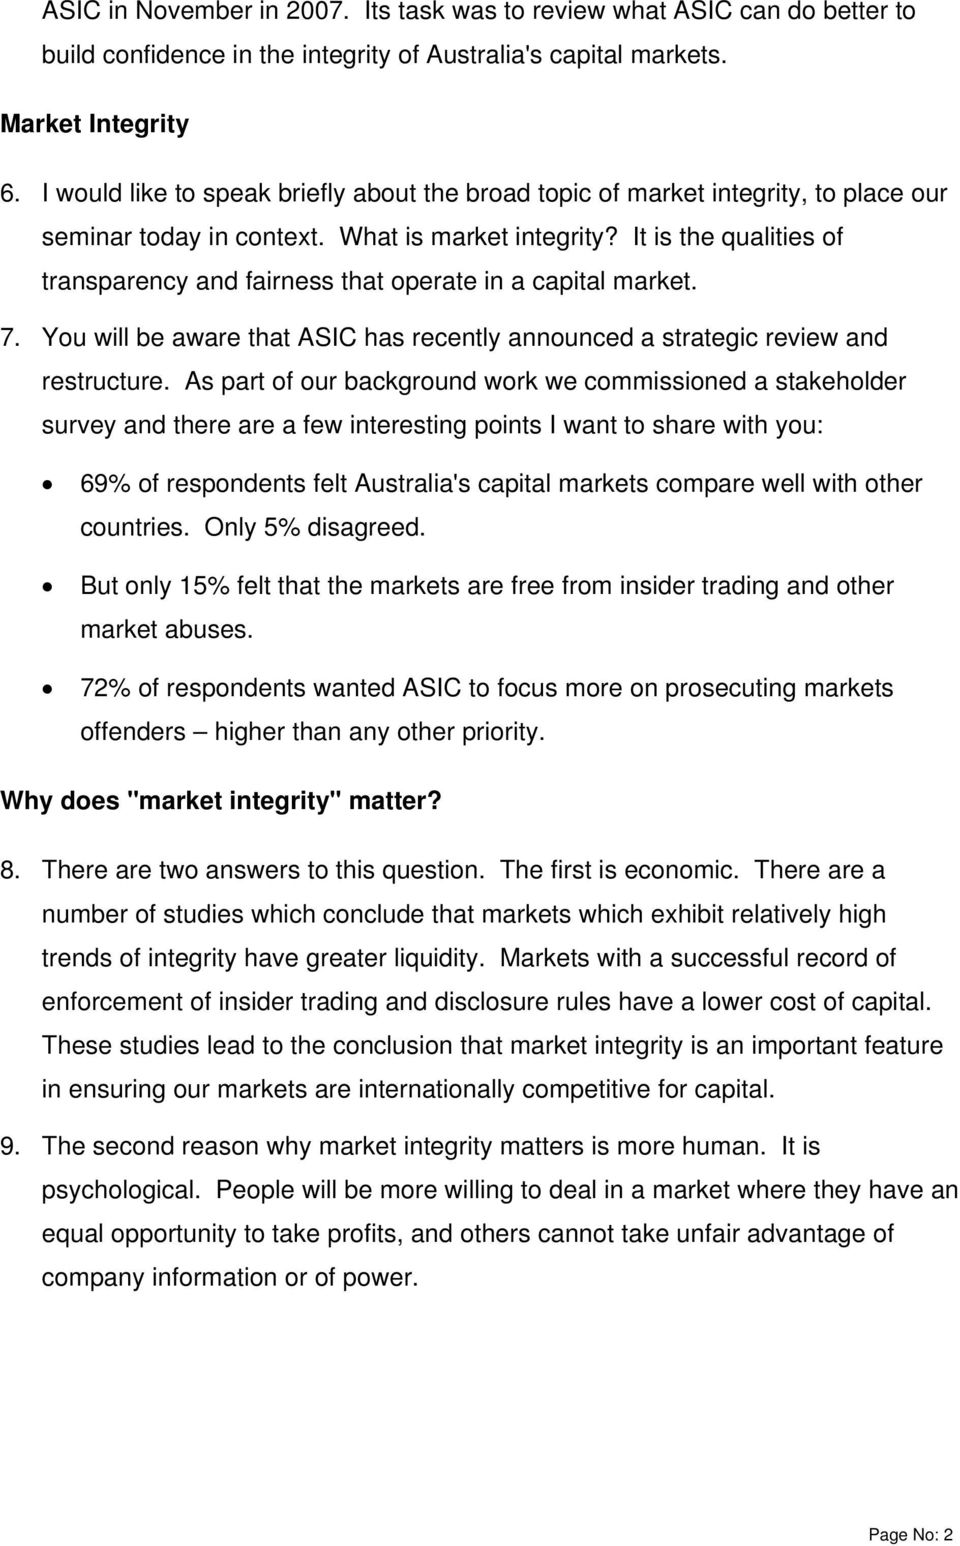 It is the qualities of transparency and fairness that operate in a capital market. 7. You will be aware that ASIC has recently announced a strategic review and restructure.